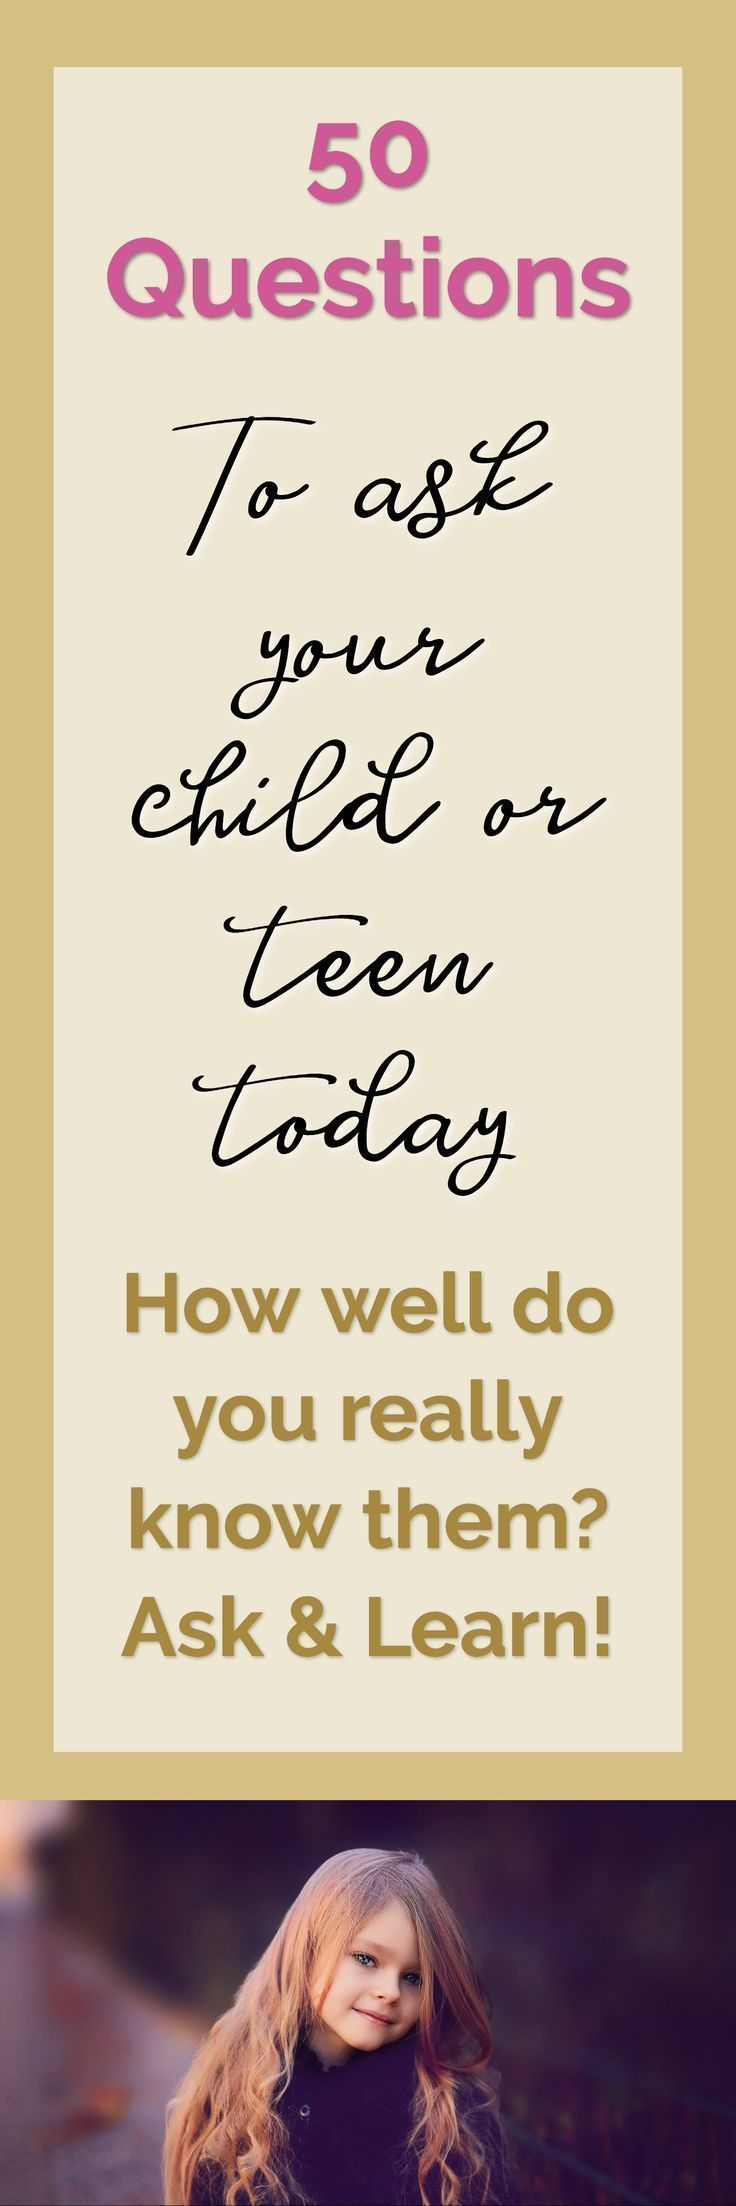 dating tips for teens and parents students quotes free